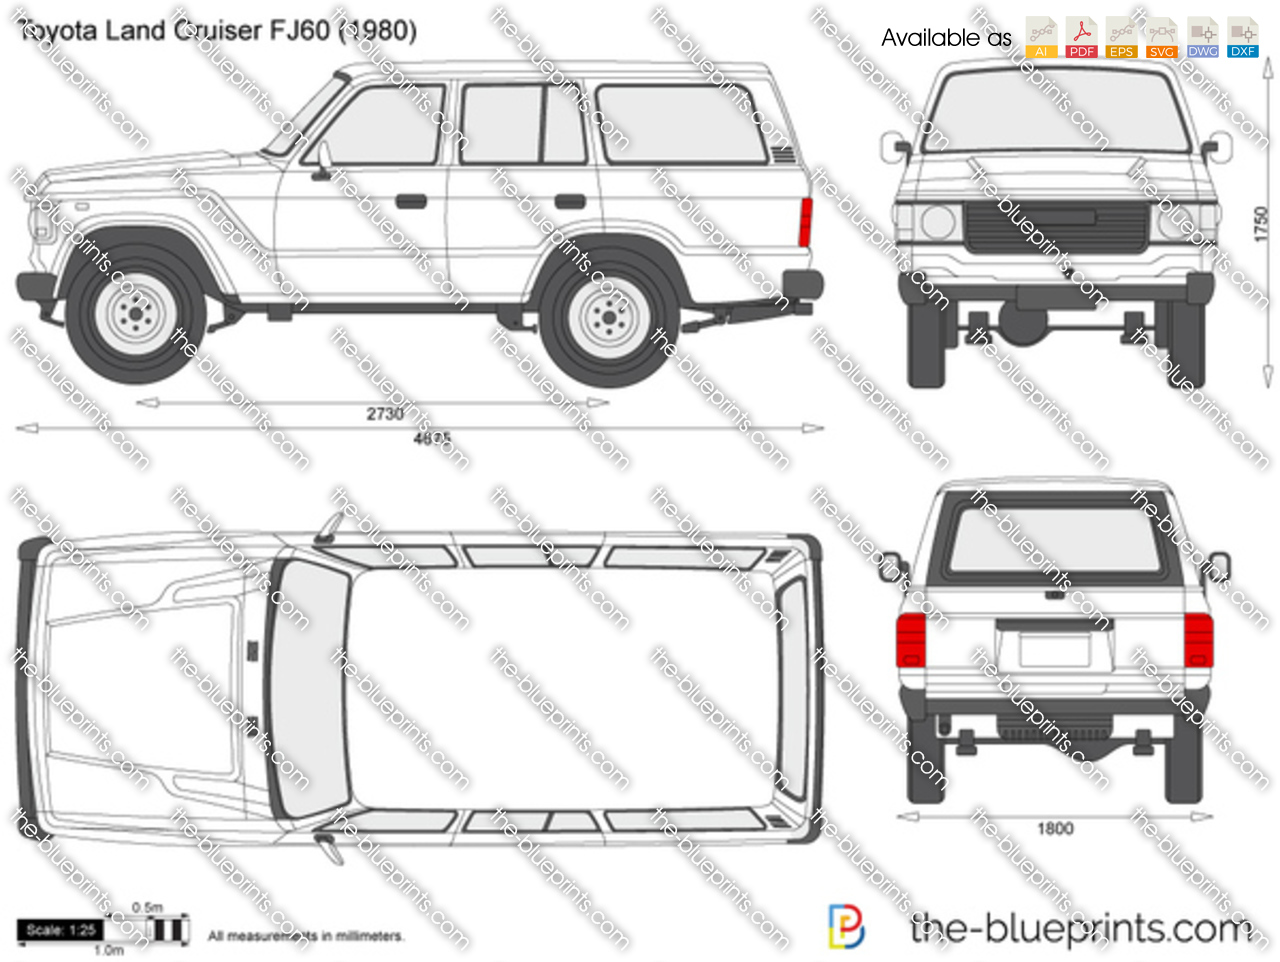 toyota land cruiser fj60 vector drawing